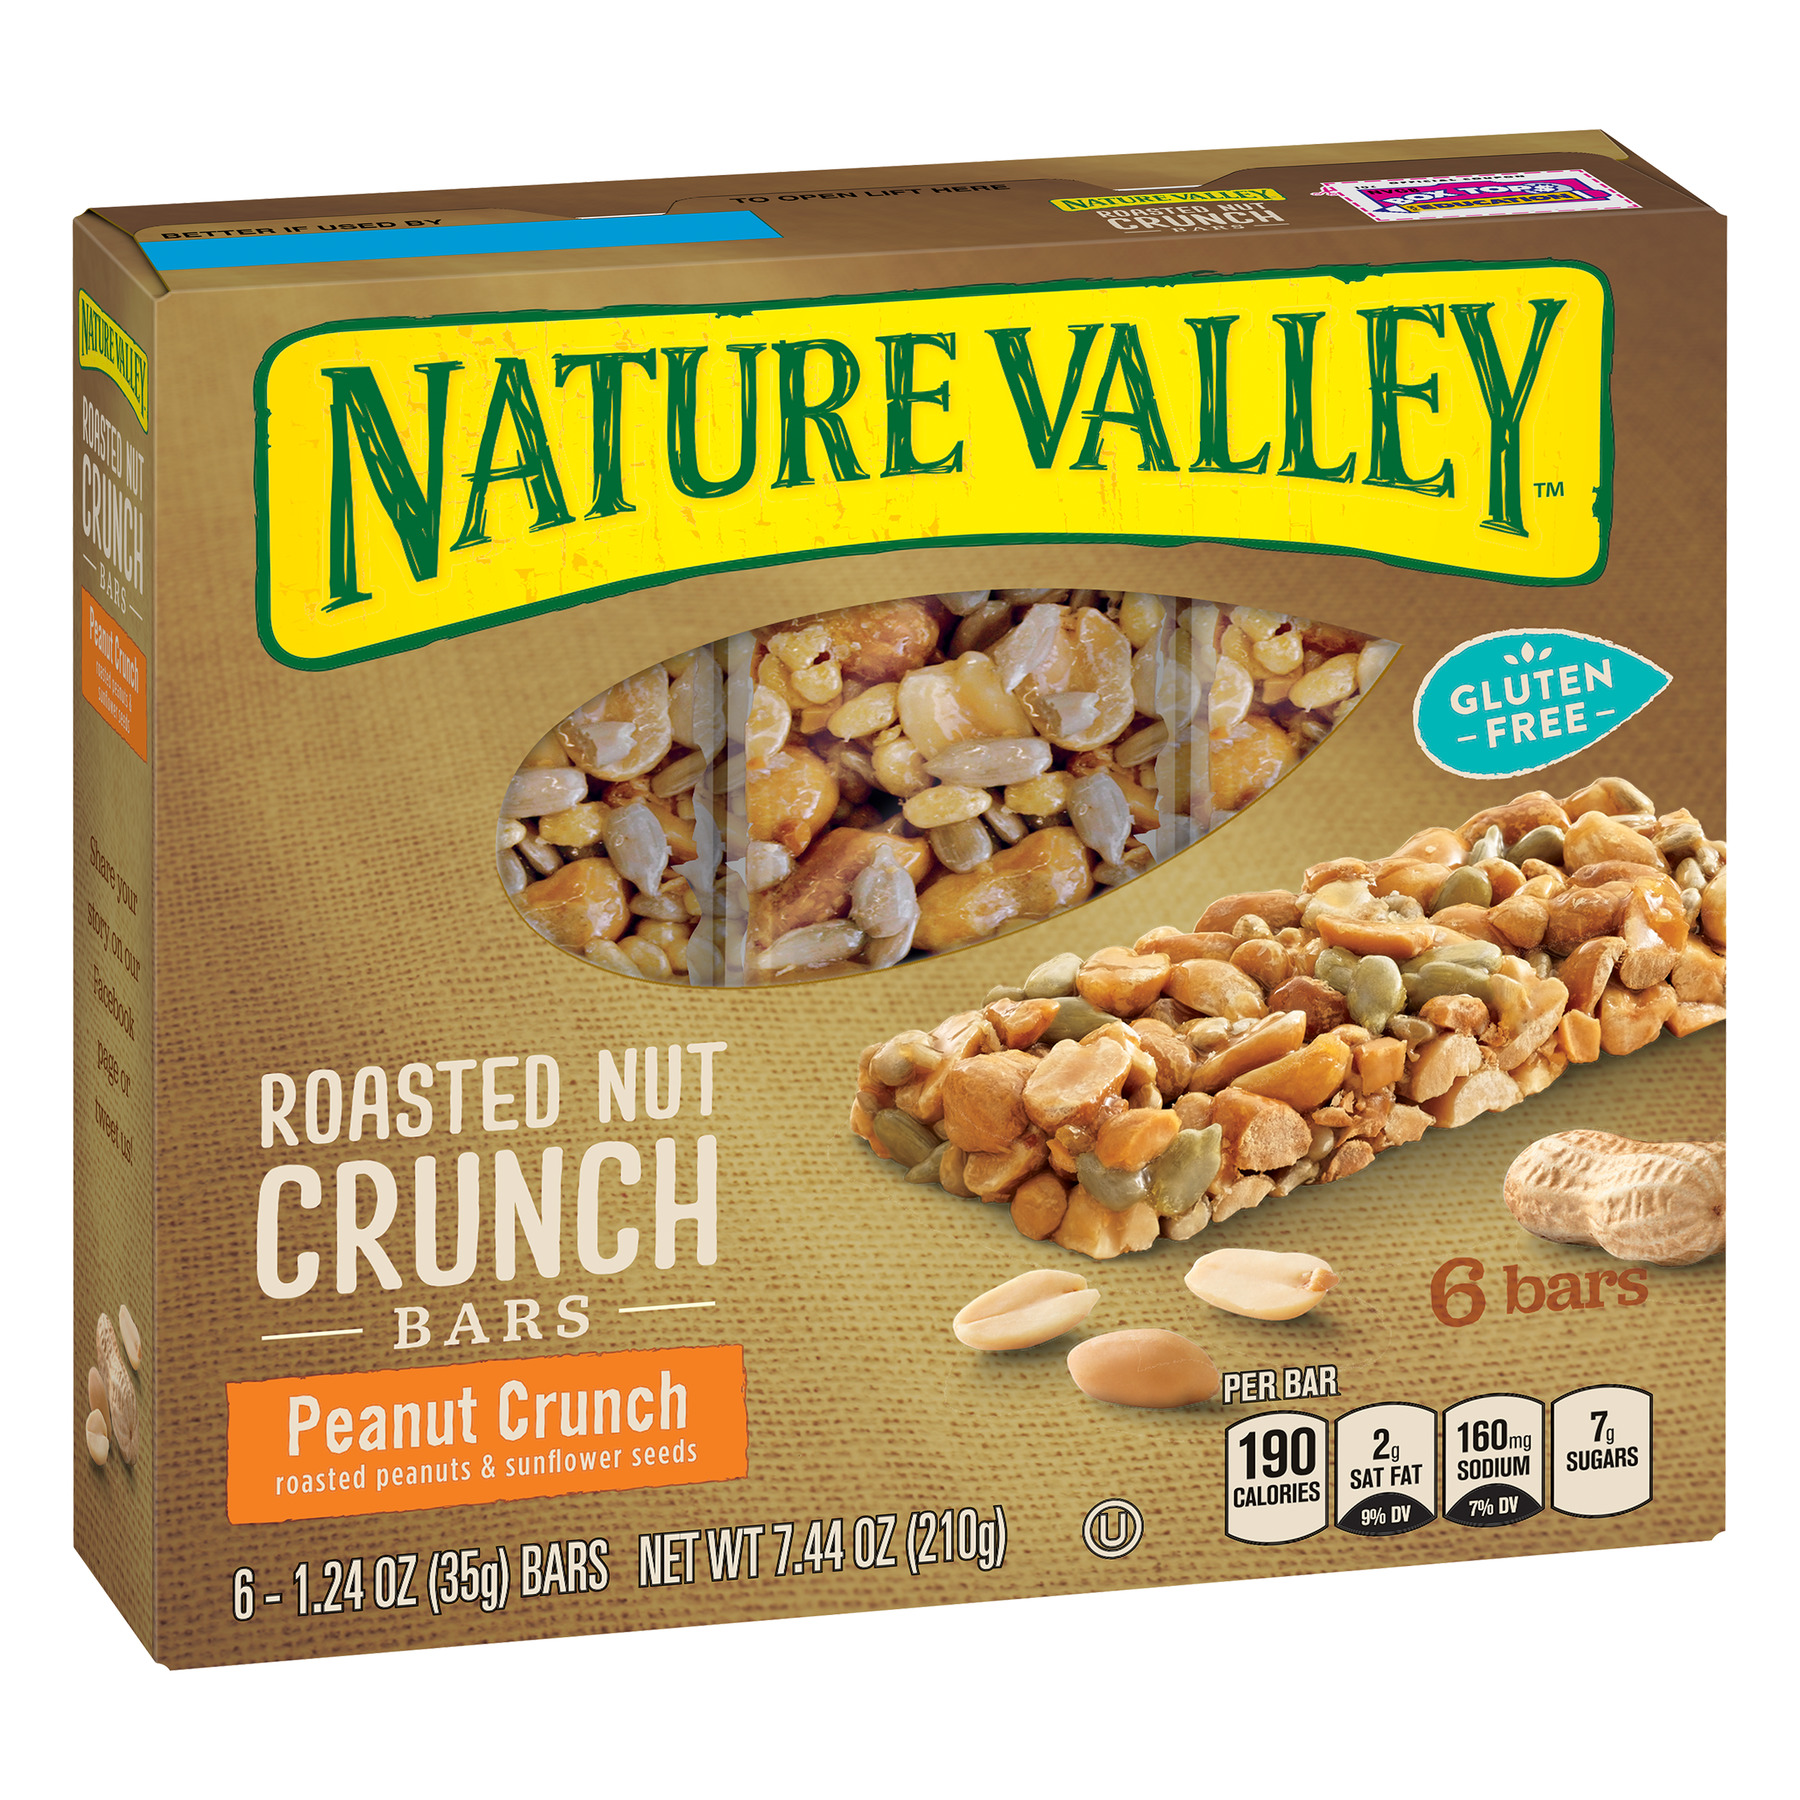 Nature Valley Granola Bars Roasted Nut Crunch Peanut Crunch 6 Bars